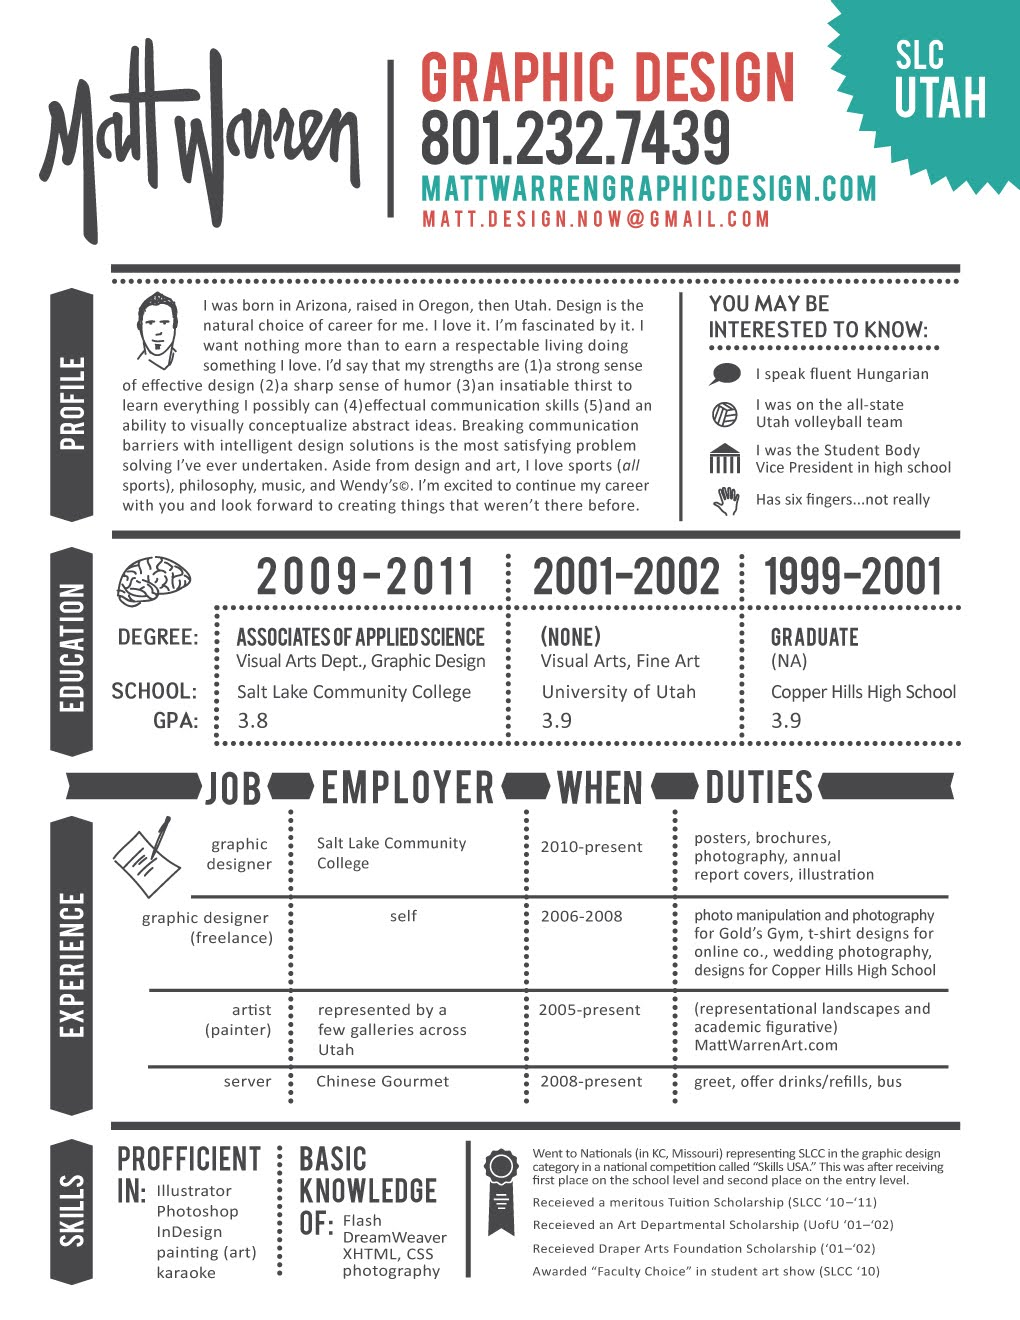 Opposenewapstandardsus  Wonderful  Images About Hire Me On Pinterest  Graphic Designer Resume  With Outstanding  Images About Hire Me On Pinterest  Graphic Designer Resume Resume Design And Resume With Beauteous Professional Summary Resume Examples Also Resume Accounting In Addition High School Resume No Work Experience And Administrative Assistant Job Description For Resume As Well As Your Resume Additionally Resume Summary Sample From Pinterestcom With Opposenewapstandardsus  Outstanding  Images About Hire Me On Pinterest  Graphic Designer Resume  With Beauteous  Images About Hire Me On Pinterest  Graphic Designer Resume Resume Design And Resume And Wonderful Professional Summary Resume Examples Also Resume Accounting In Addition High School Resume No Work Experience From Pinterestcom